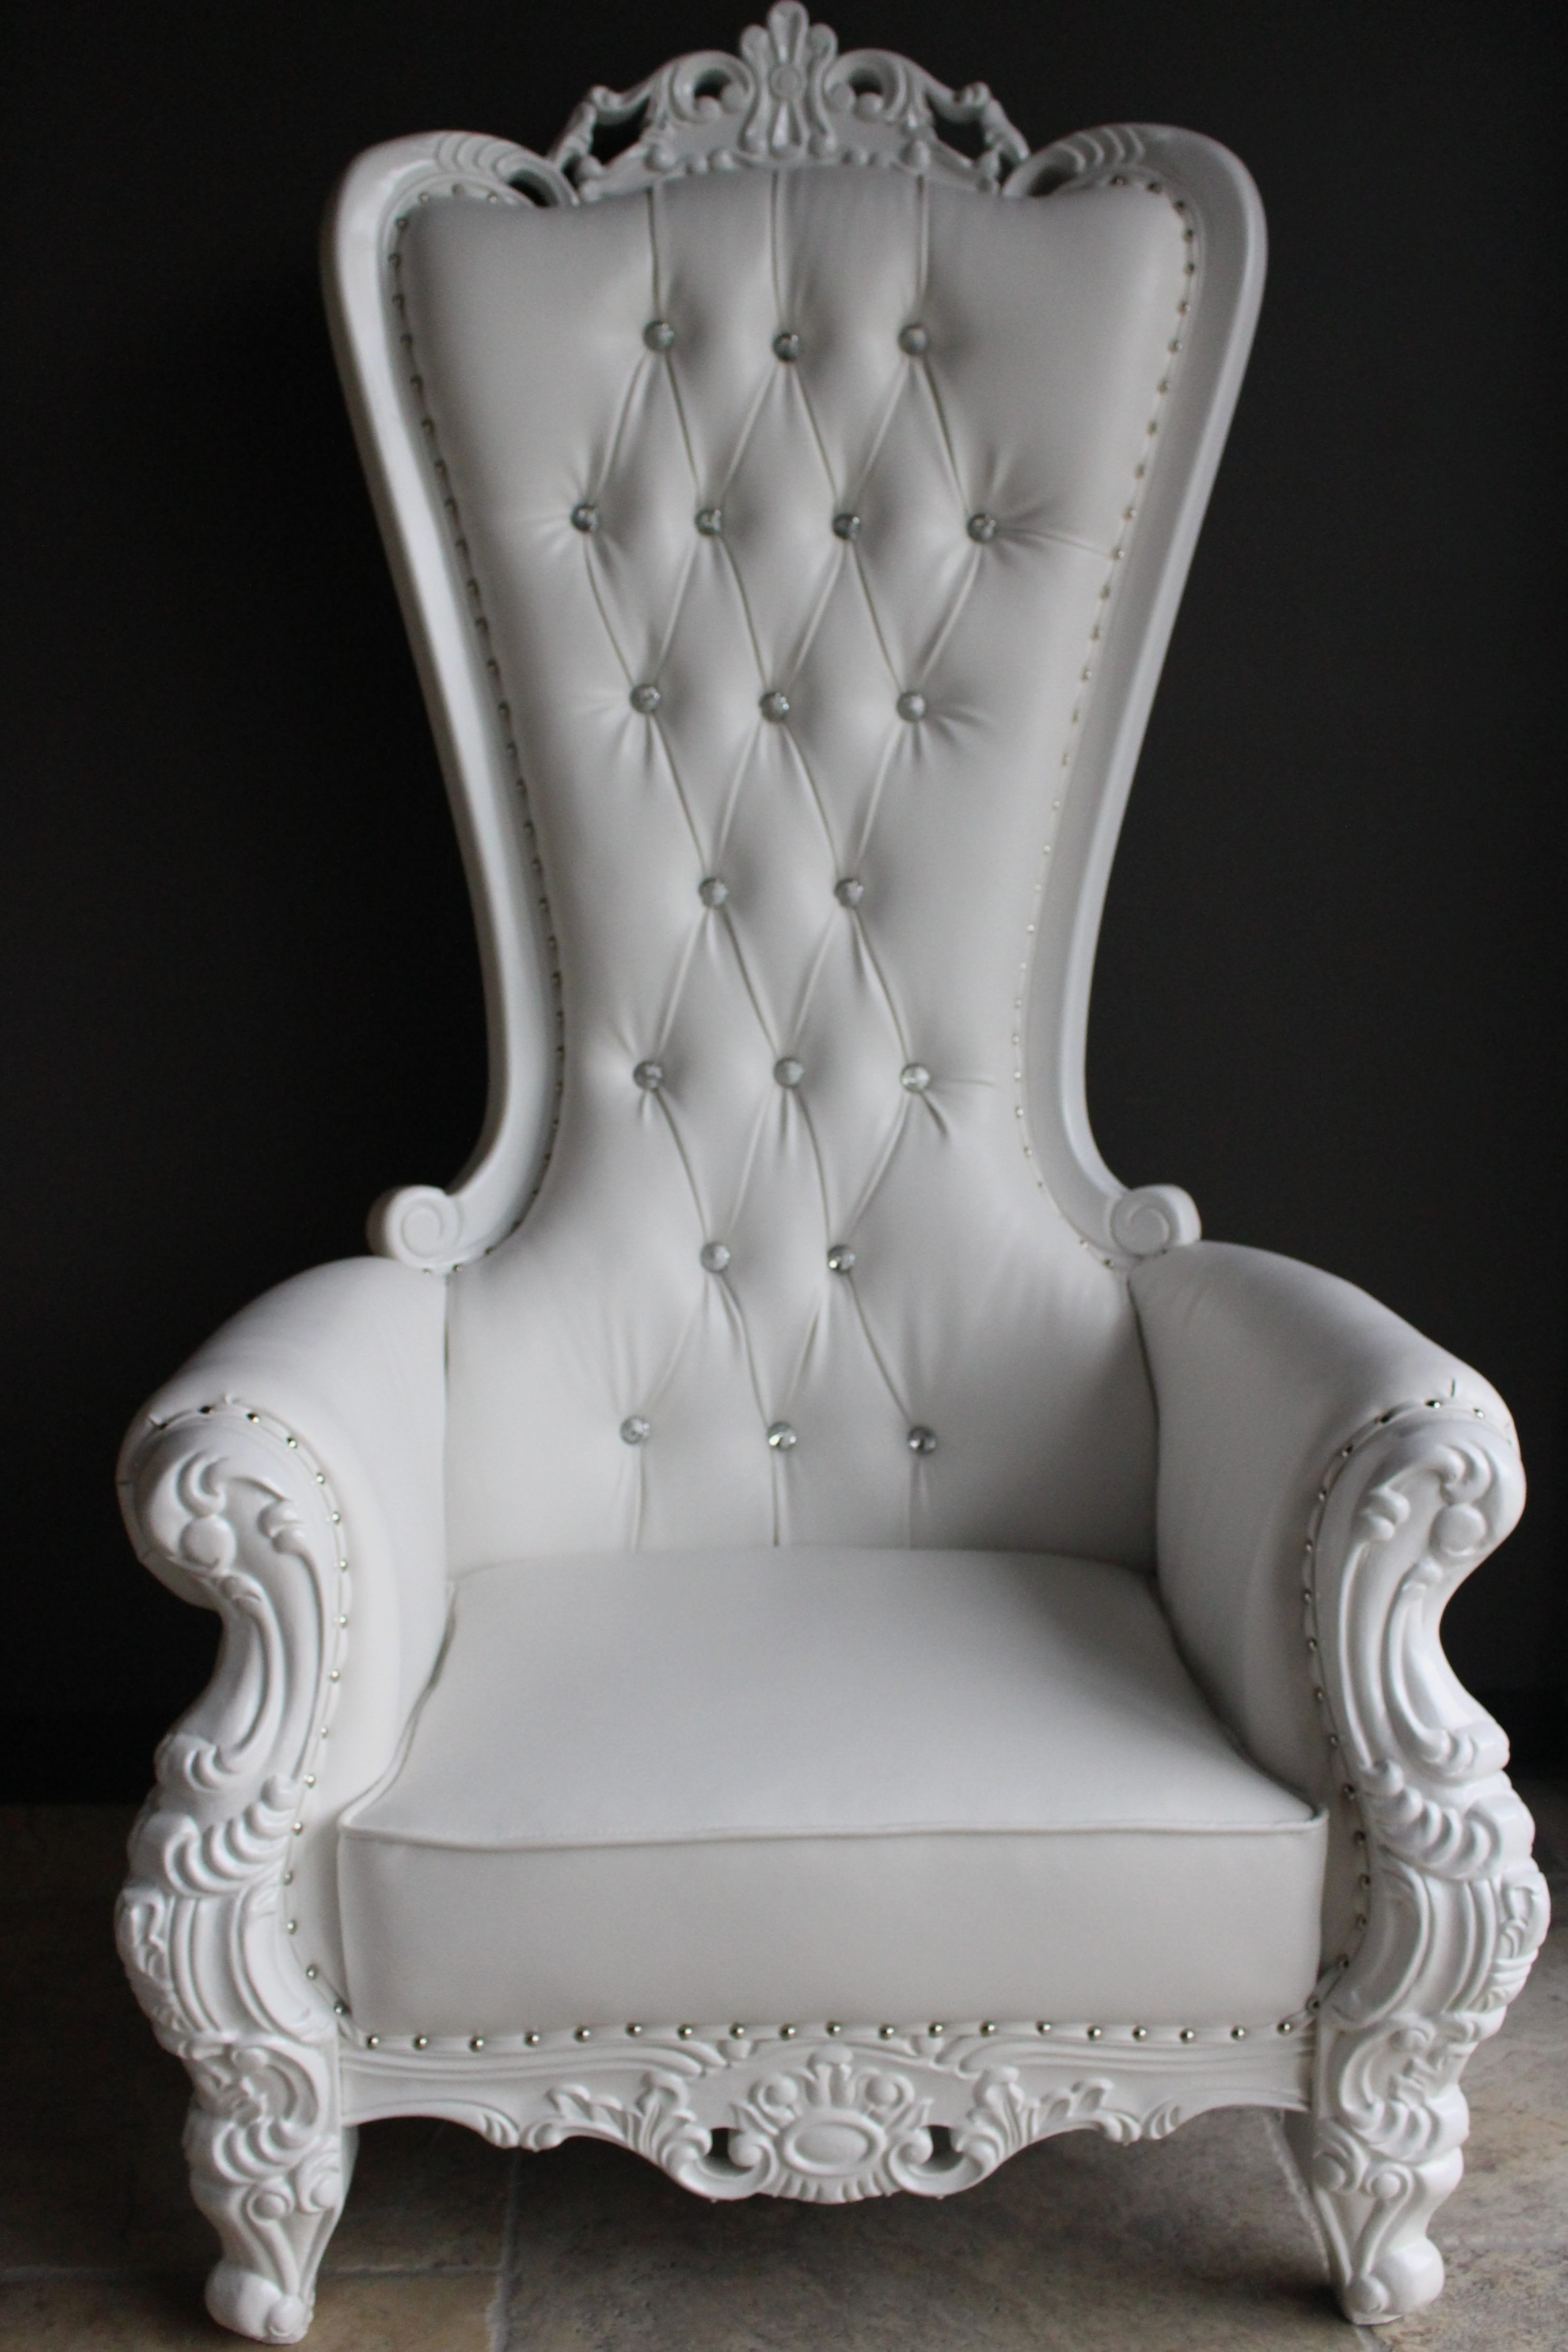 Genial King And Queen Throne Chairs Beautiful Indoor Chairs White Throne Chairs  King Queen Chairs Royal